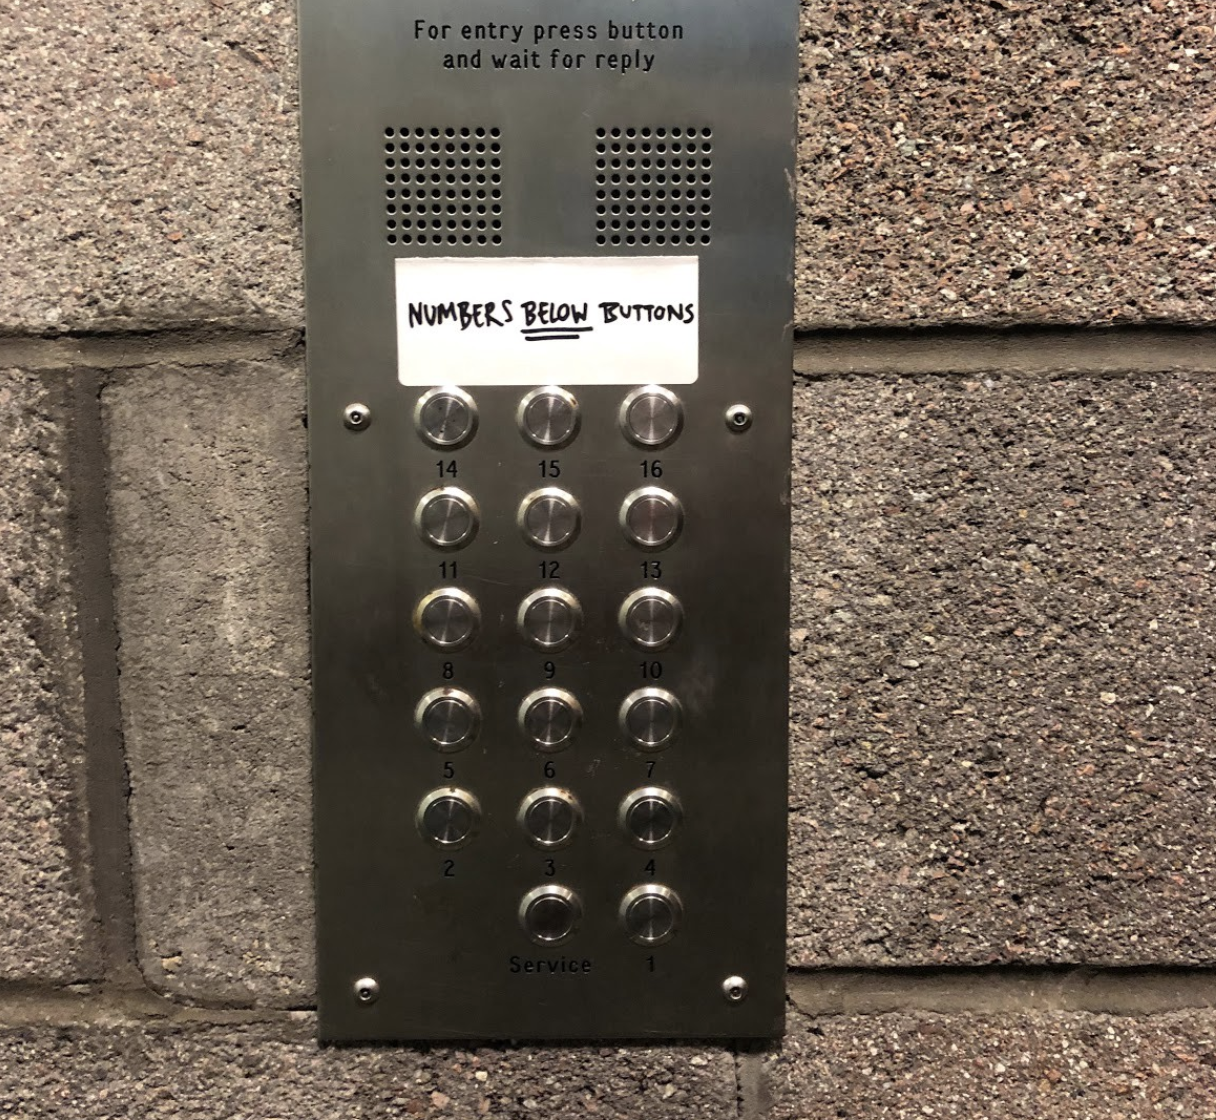 Buzzer panel with numbers 1 to 14 listed. A sticker sits above it saying, numbers below buttons